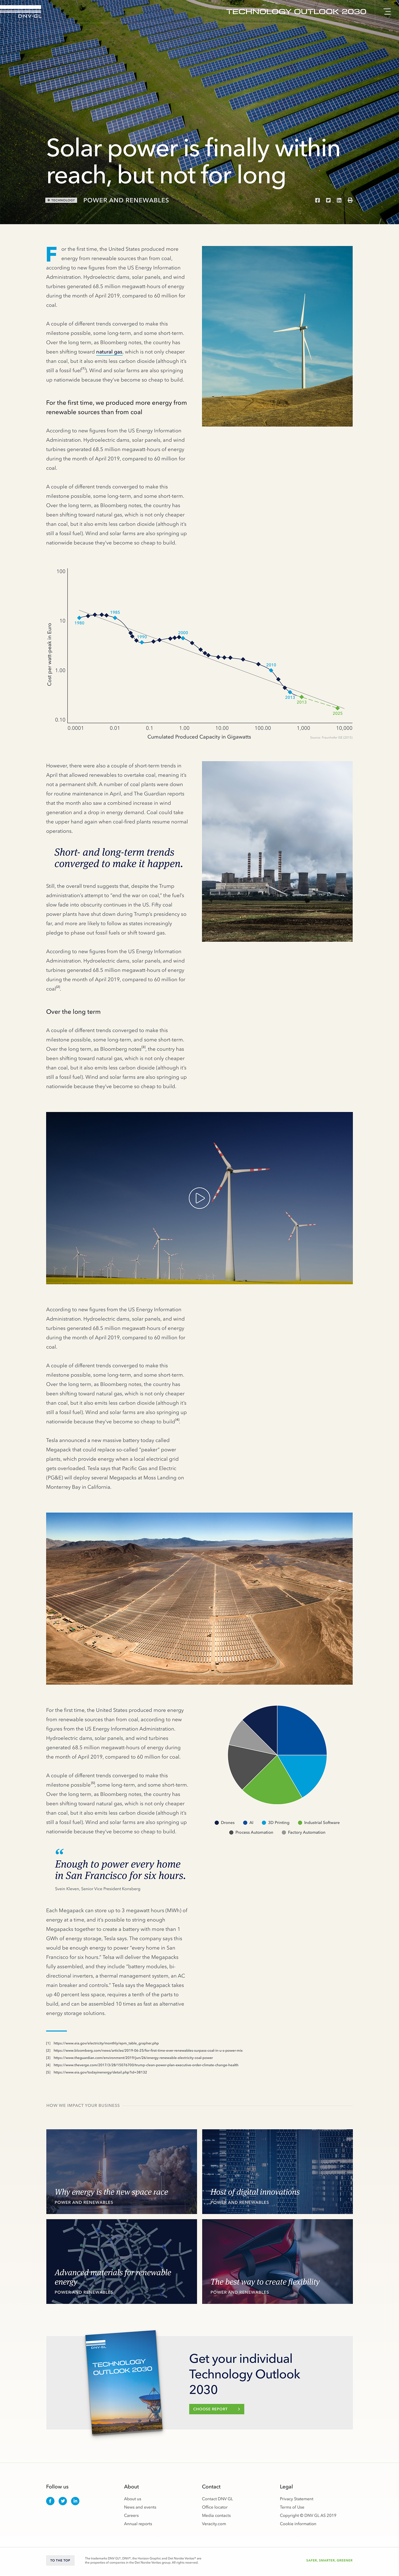 dnv-gl_technology-outlook_article-pages-1